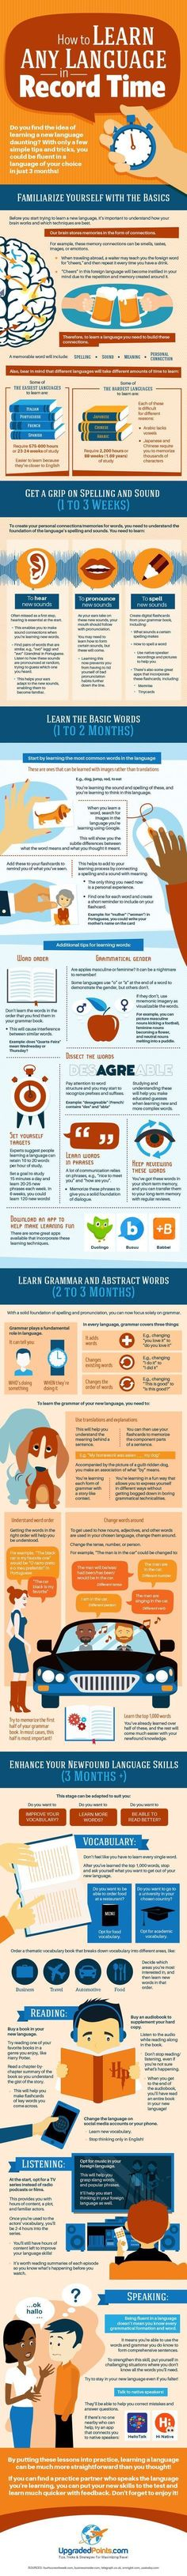 Learn a Language Fast #learnfrenchfast #frenchlanguage #EducationalInfographics